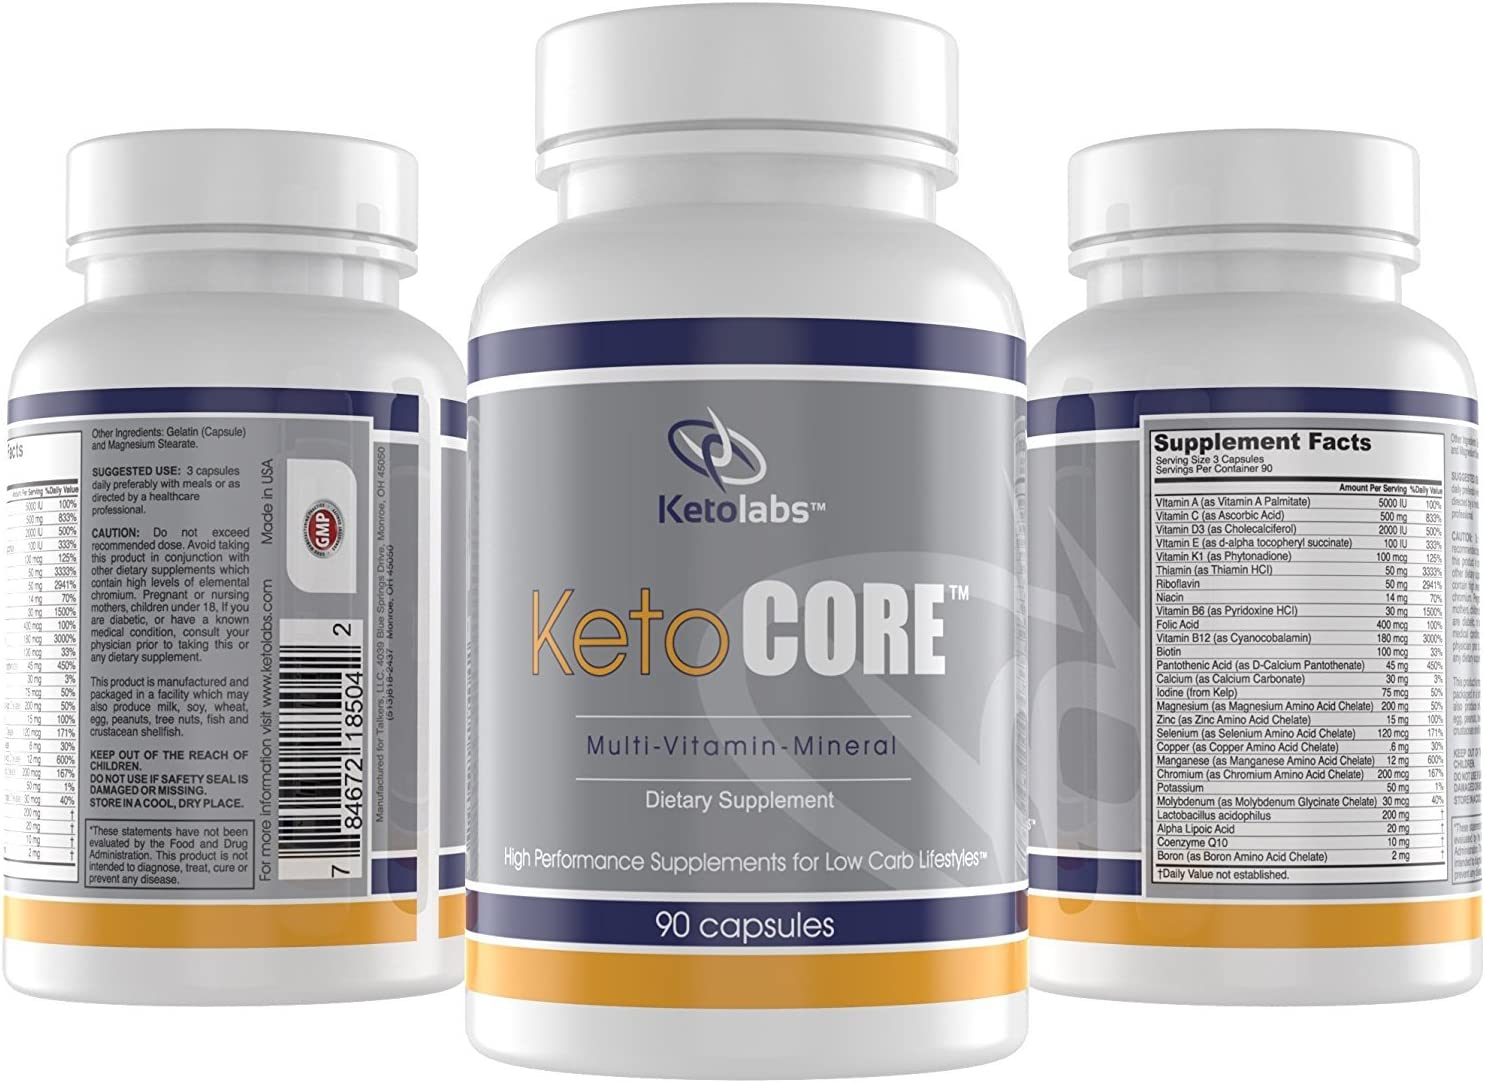 Ketolabs Keto Core Daily Multivitamin for Men and Women Contains Electrolytes, Minerals, Vitamin B, C, D, E, Probiotics Zero Carb Health Supplement for Ketogenic, Intermittent Fasting, Atkins, and Low Carb Weight Loss Diets. 30 Day Supply. 90 Capsules.